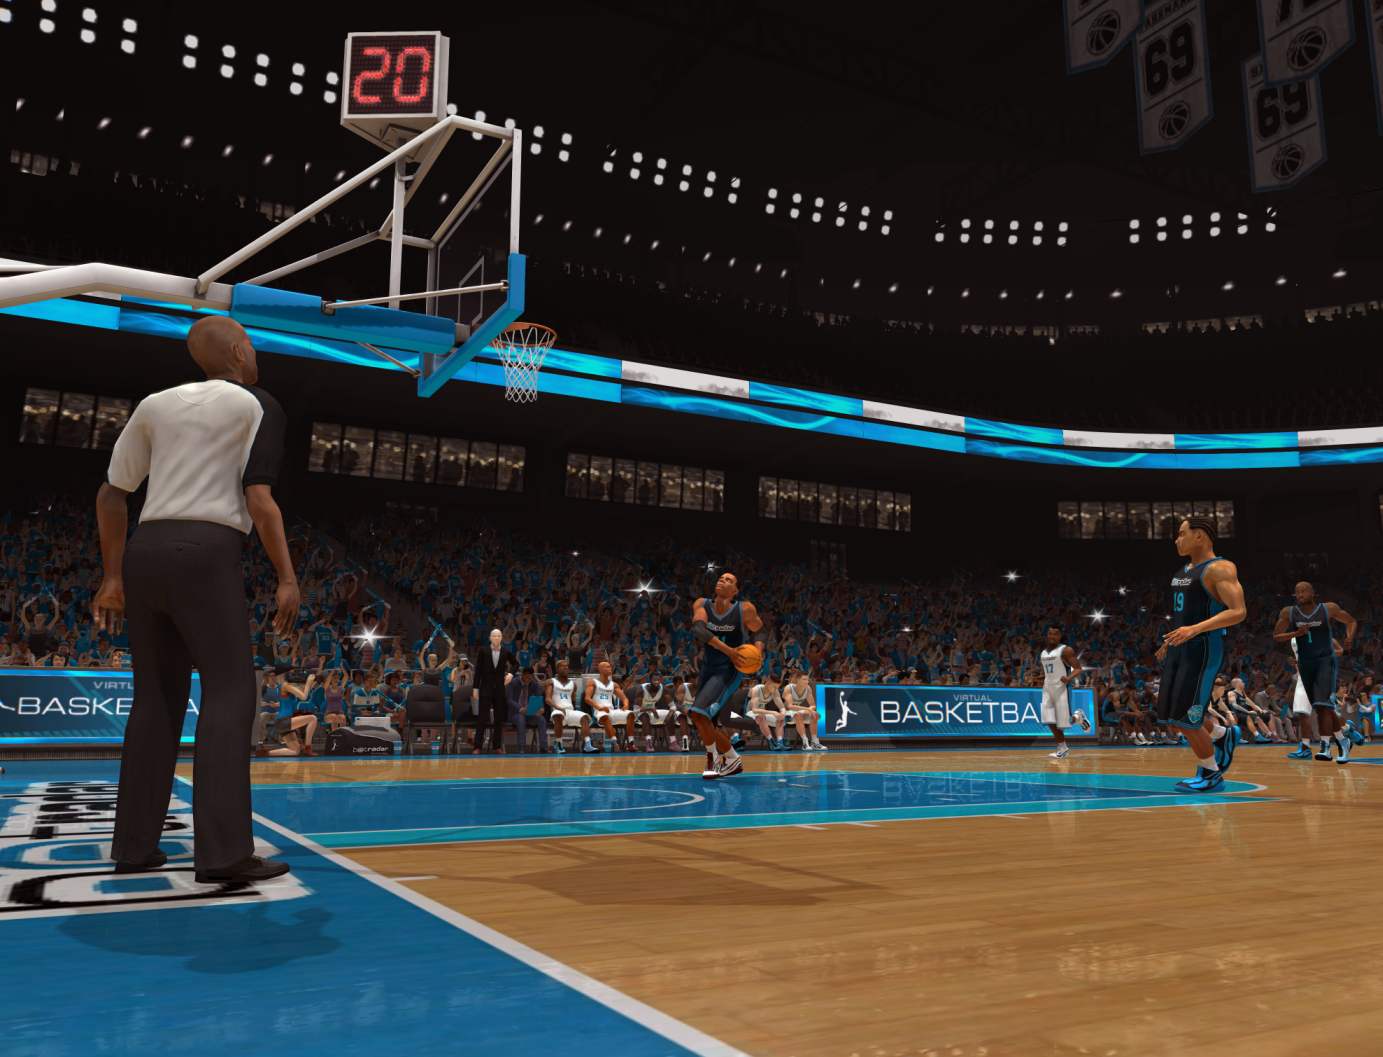 Betradar Virtual Basketball Jump